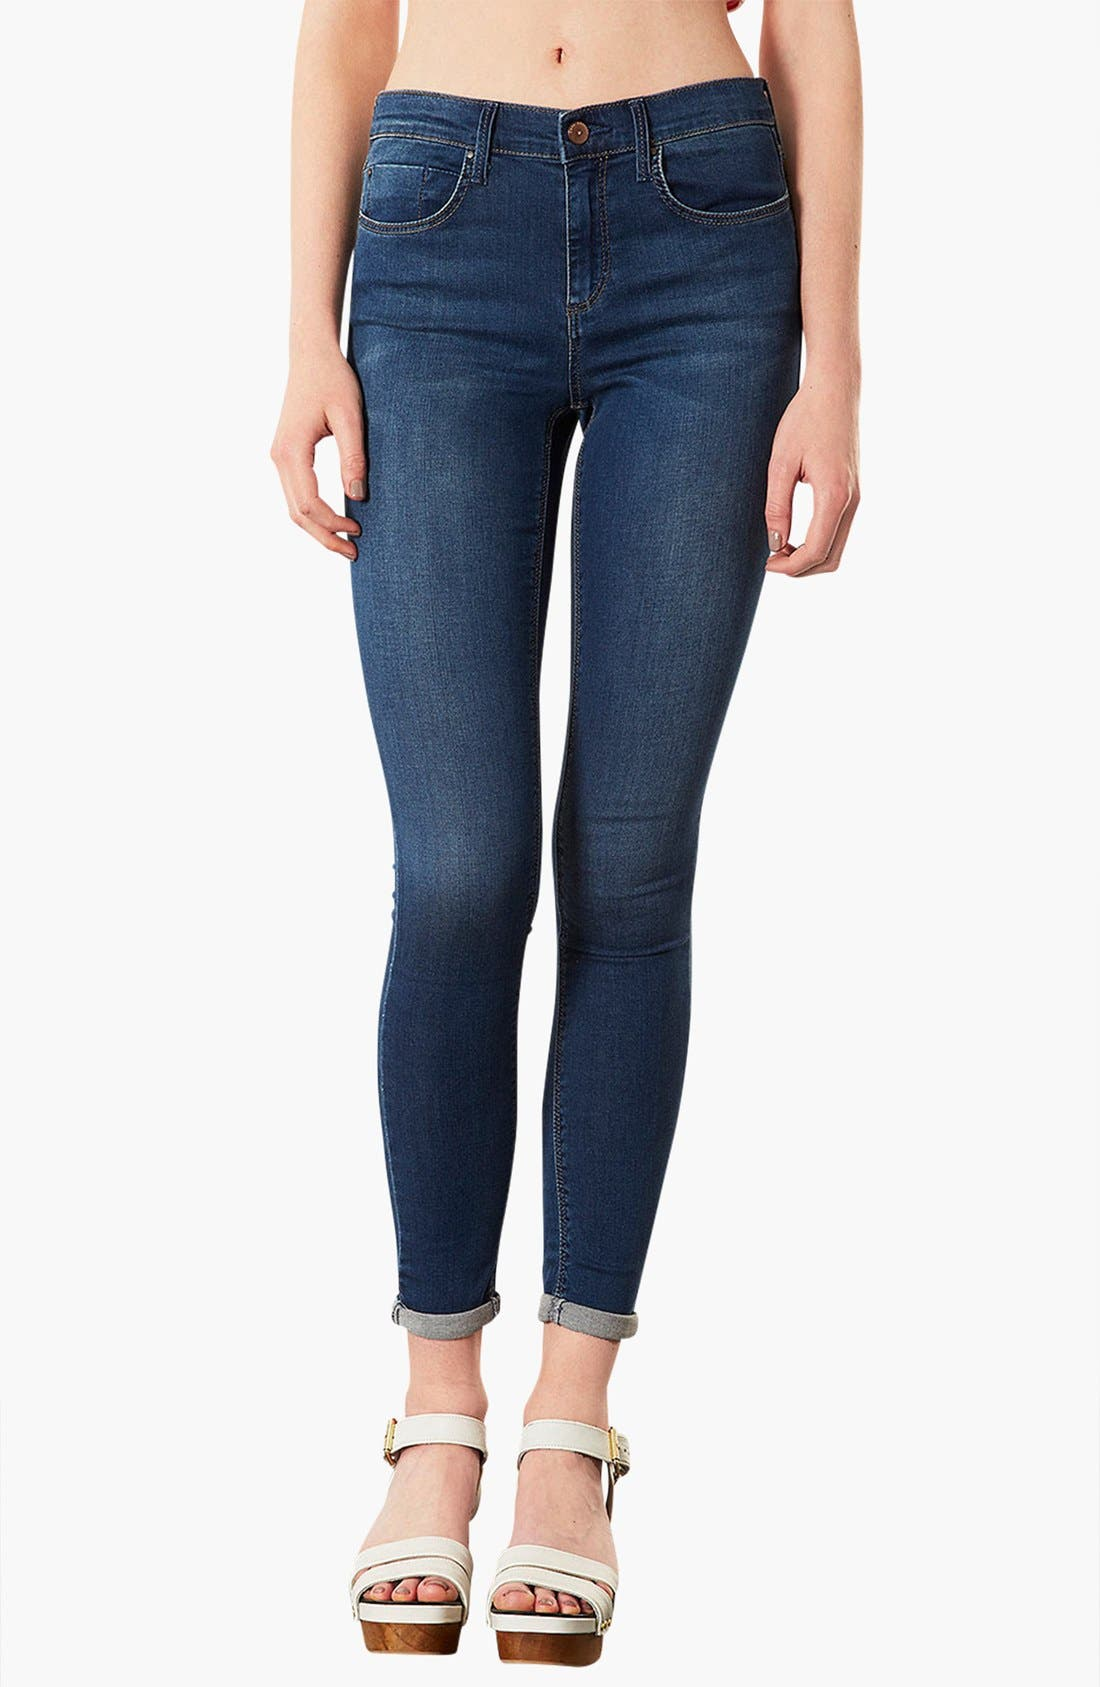 Alternate Image 1 Selected - Topshop 'Leigh' Skinny Ankle Jeans (Mid Stone) (Petite)